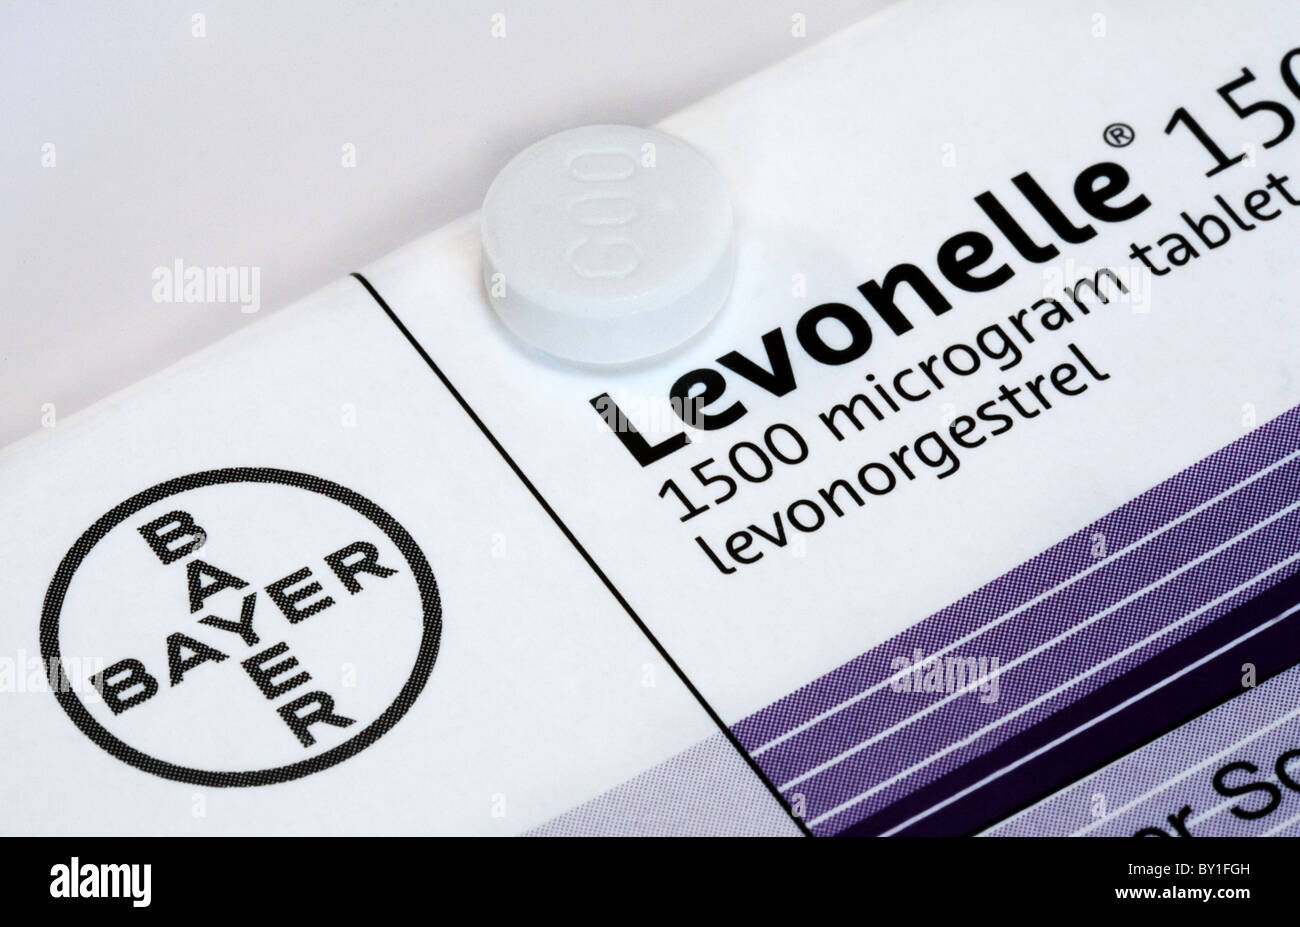 Levonelle Morning after Pill manufactured by Bayer Pharmaceuticals - Stock Image